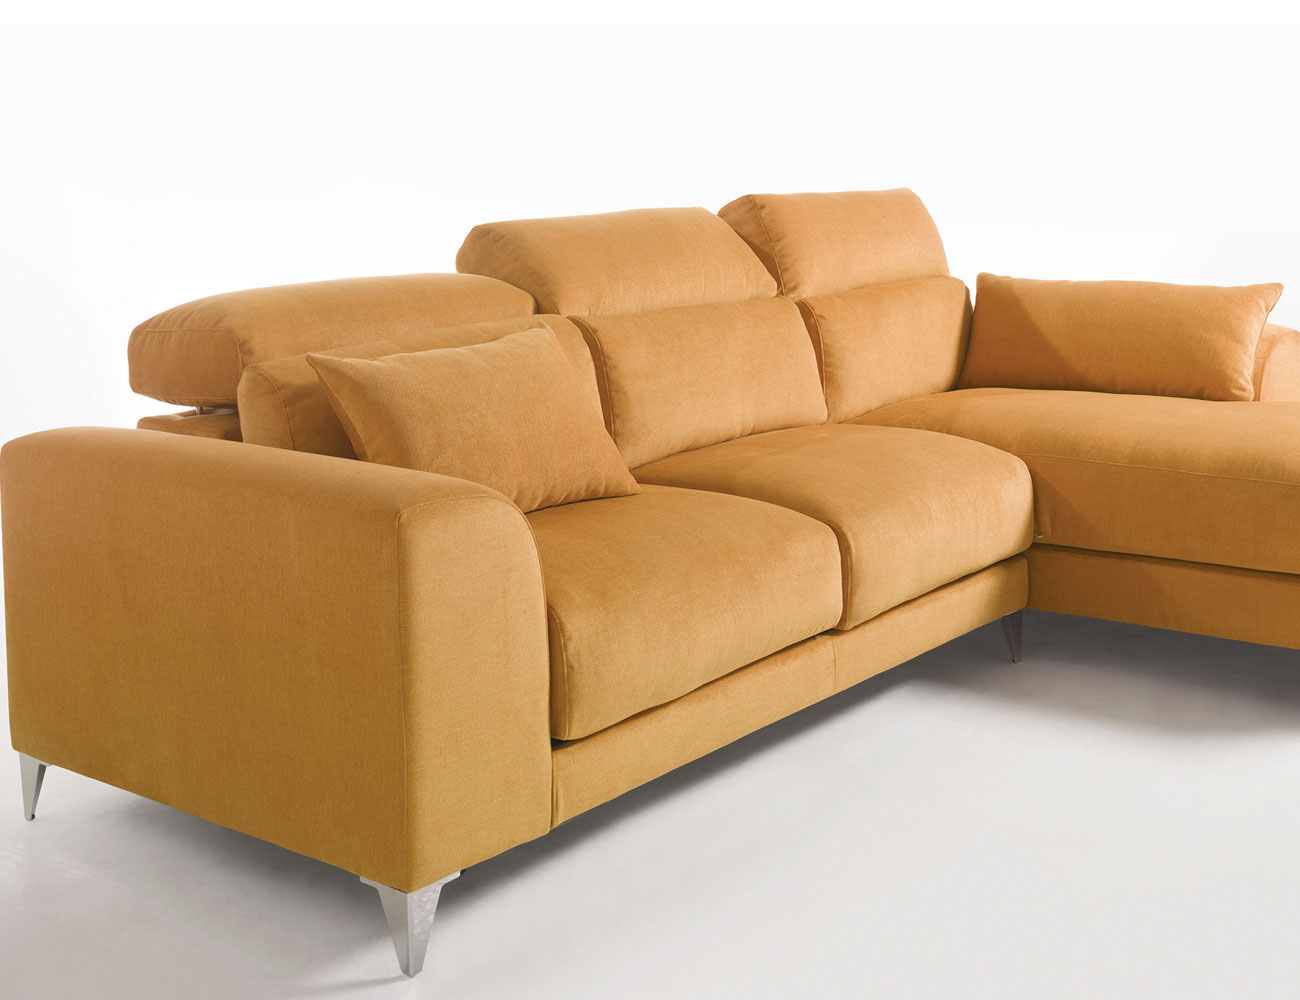 Sofa chaiselongue gran lujo decorativo patas altas amarillo 236